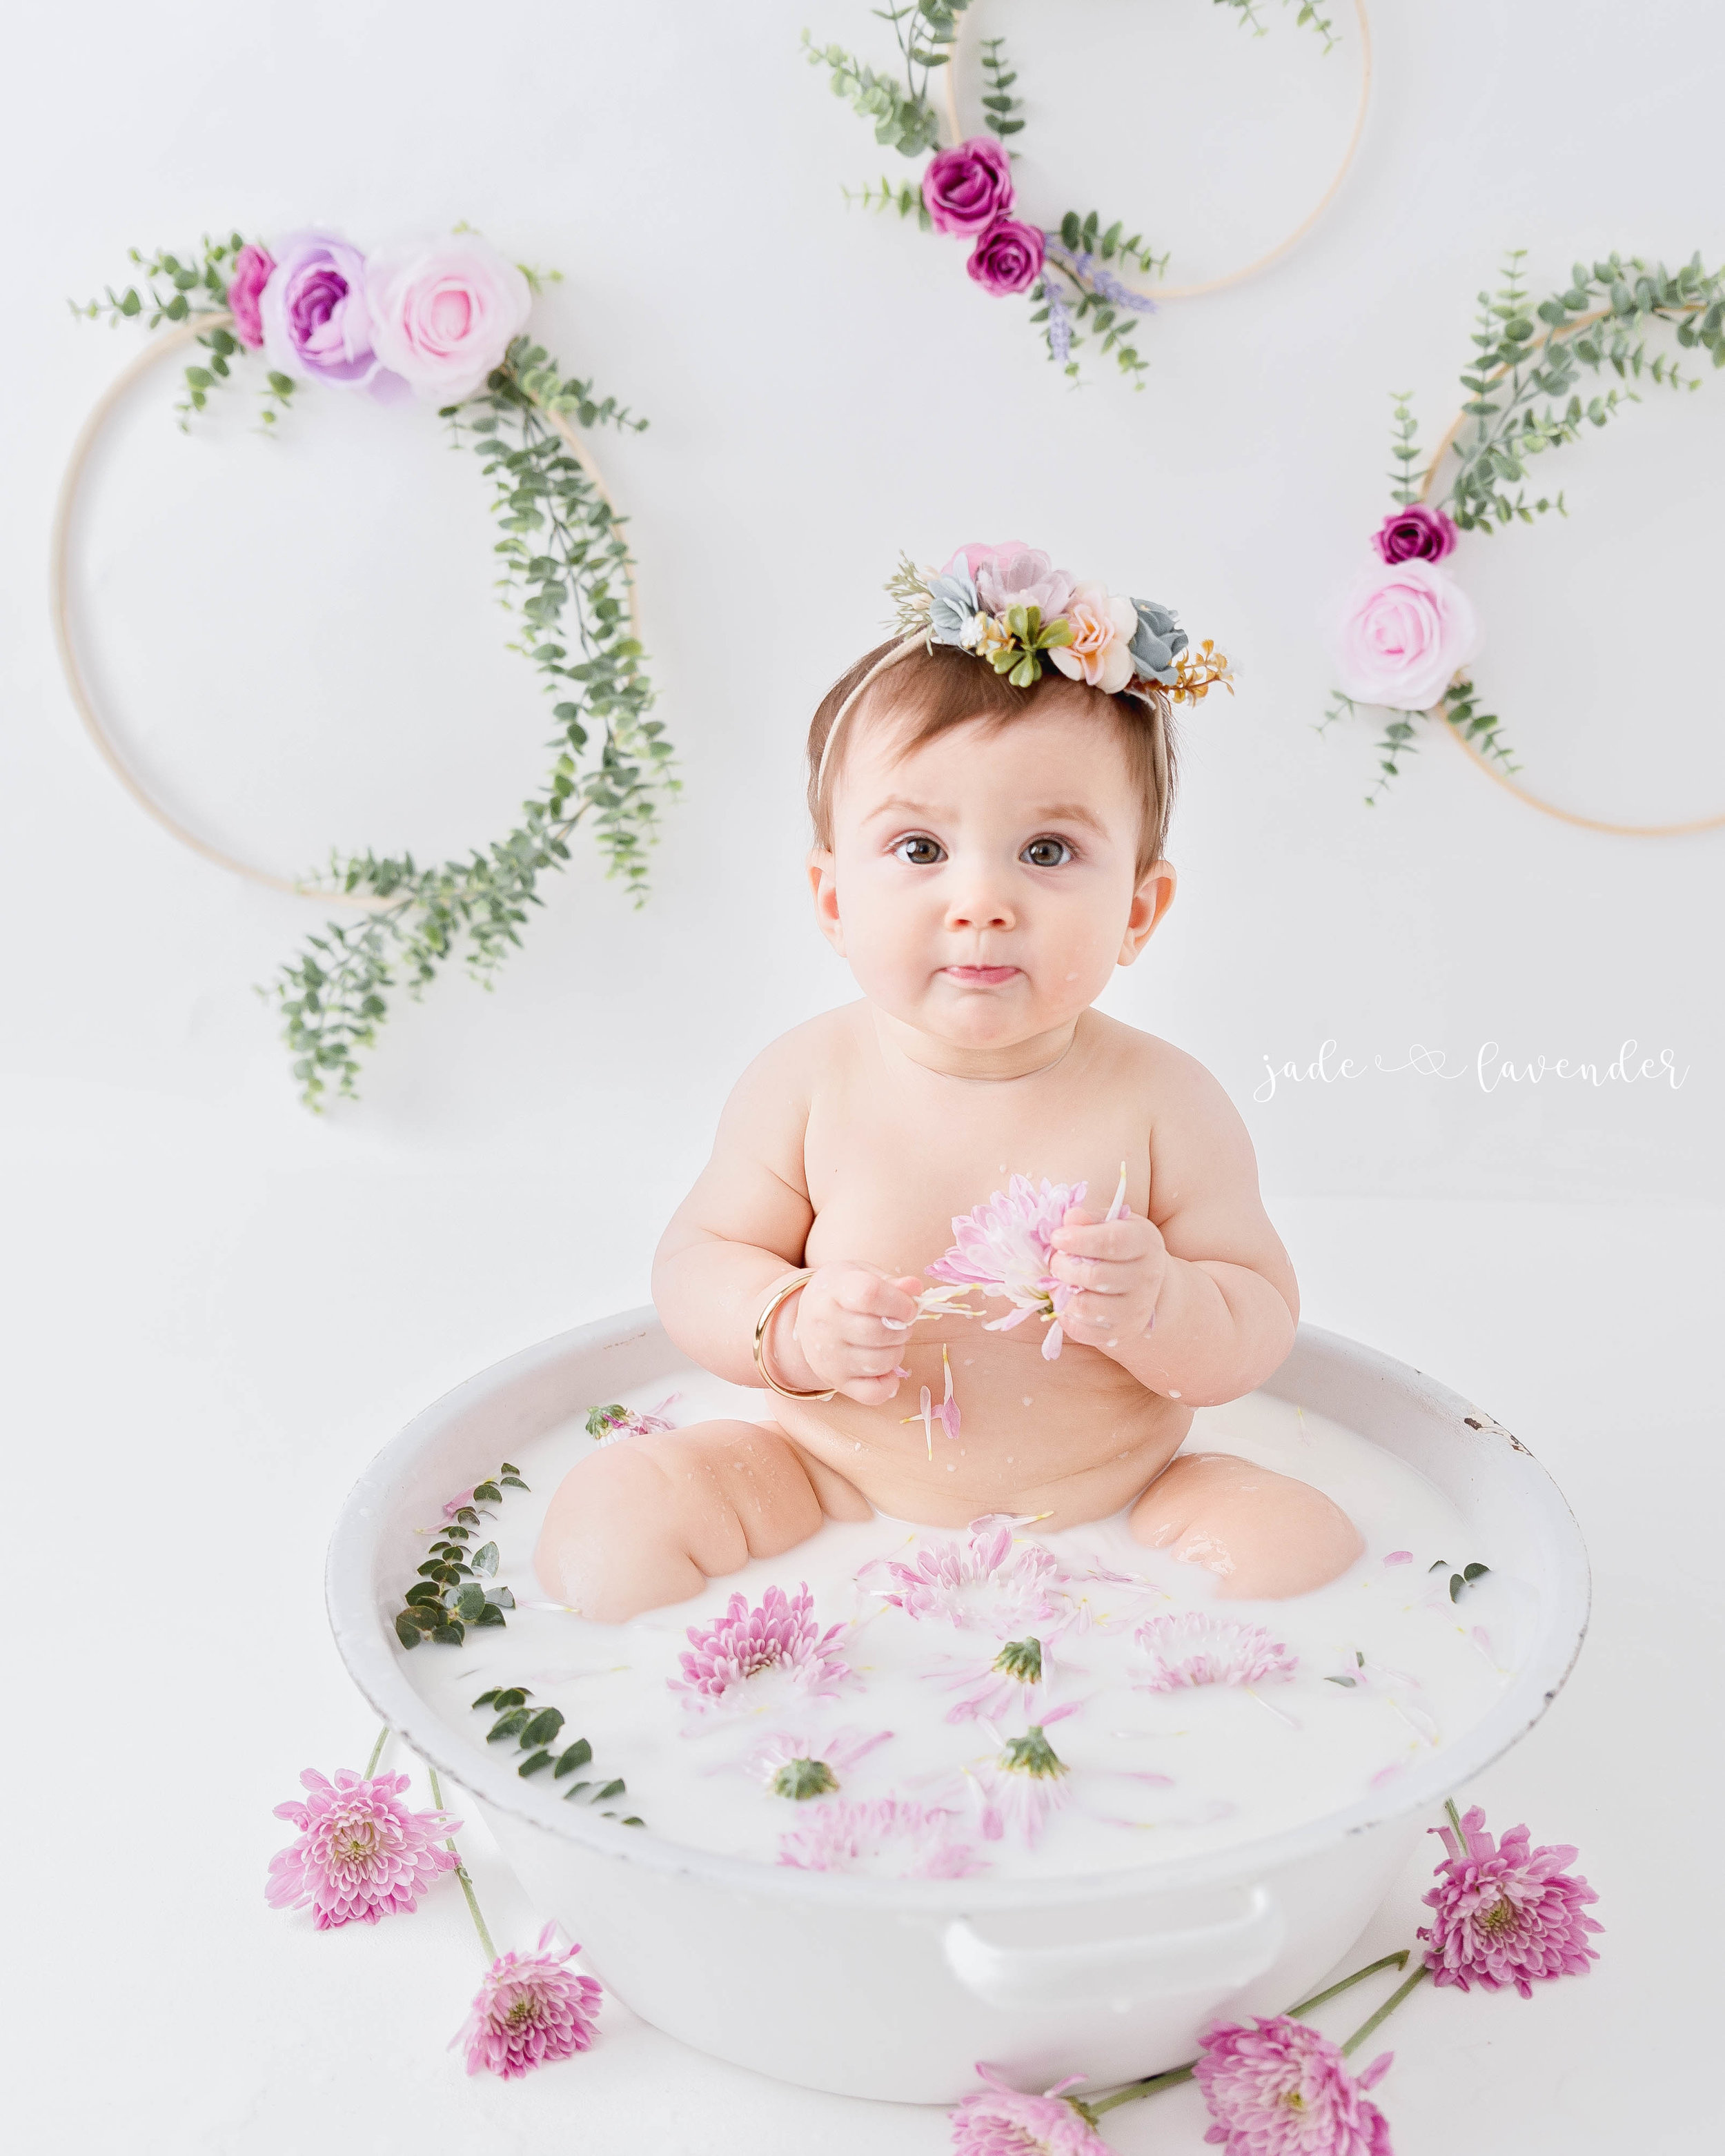 milestone-photos-milk-bath-session-infant-photography-baby-images-spokane-washington.jpg